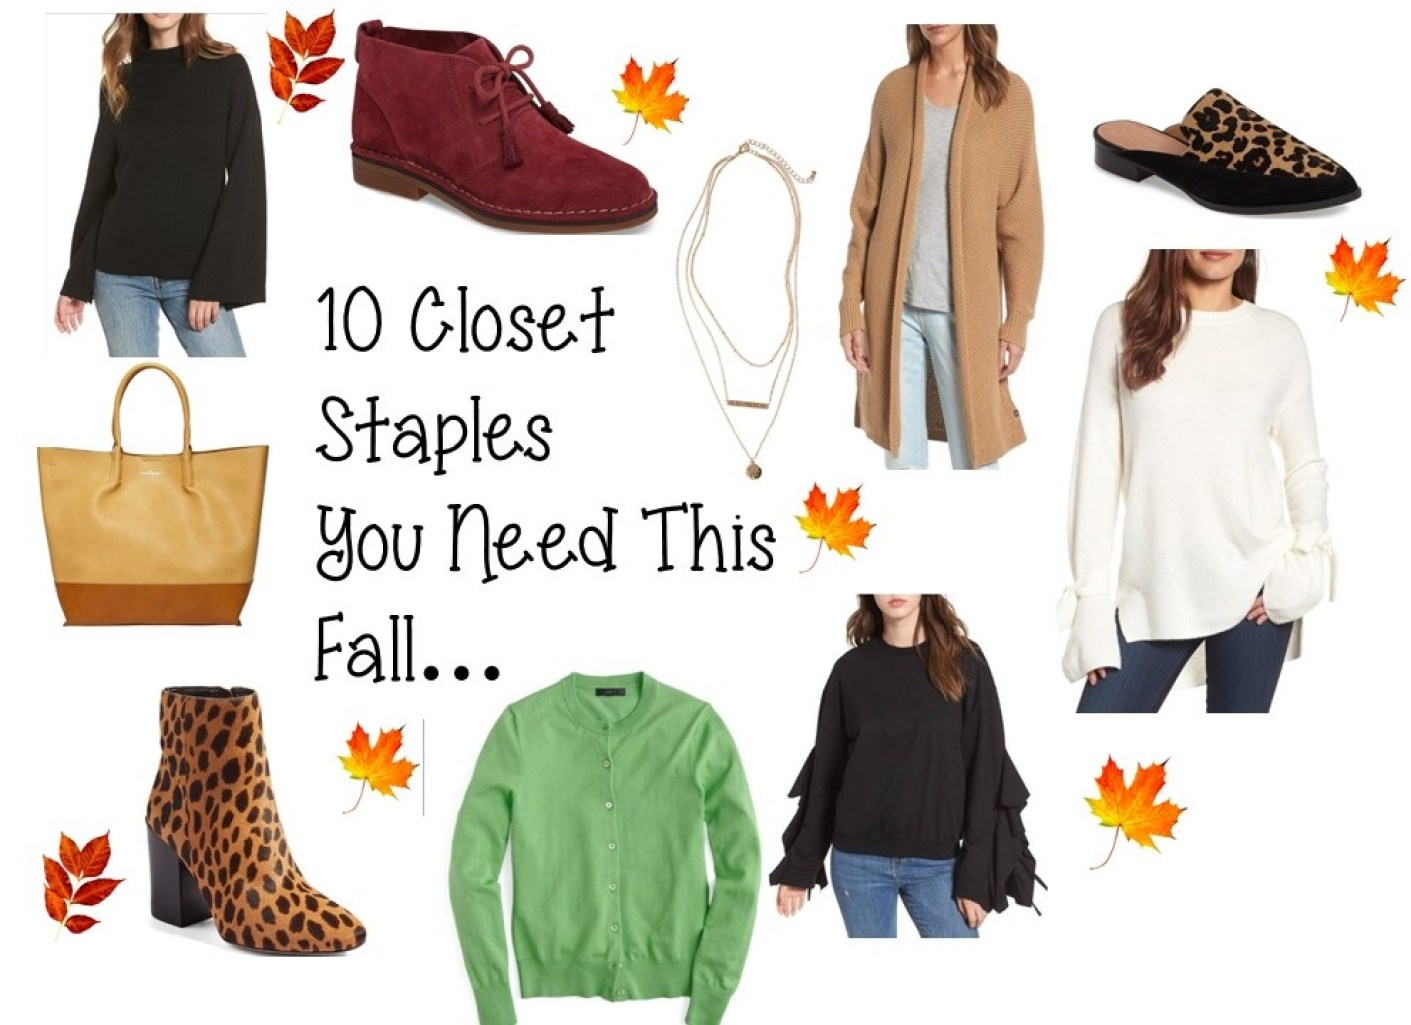 10-closet-staple-you-need-for-fall